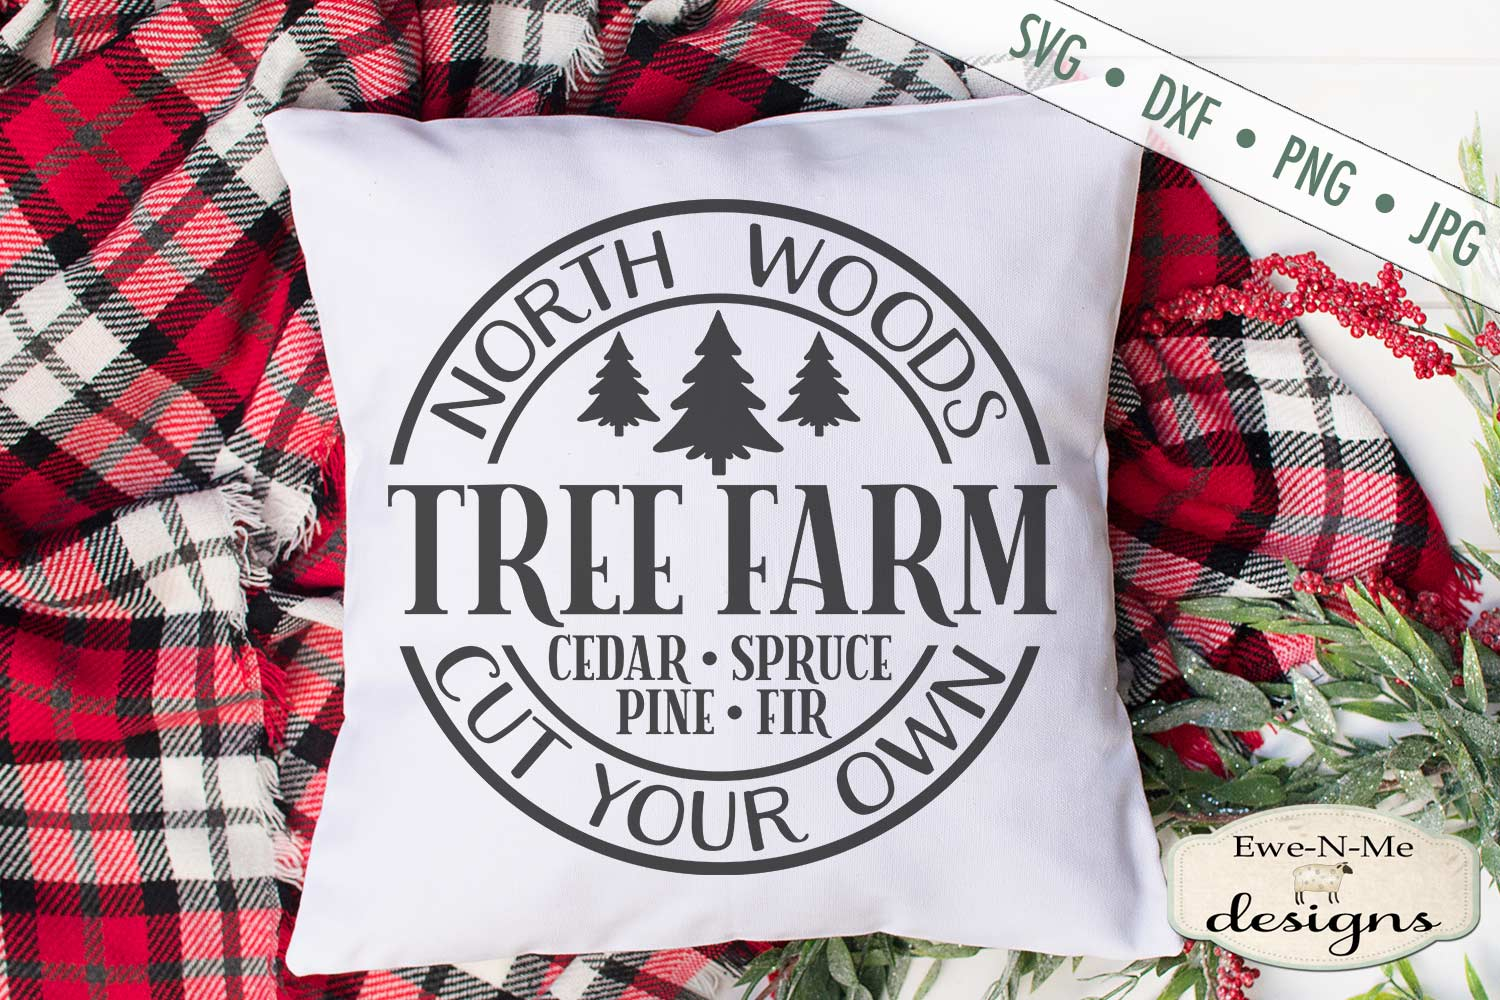 North Woods Tree Farm